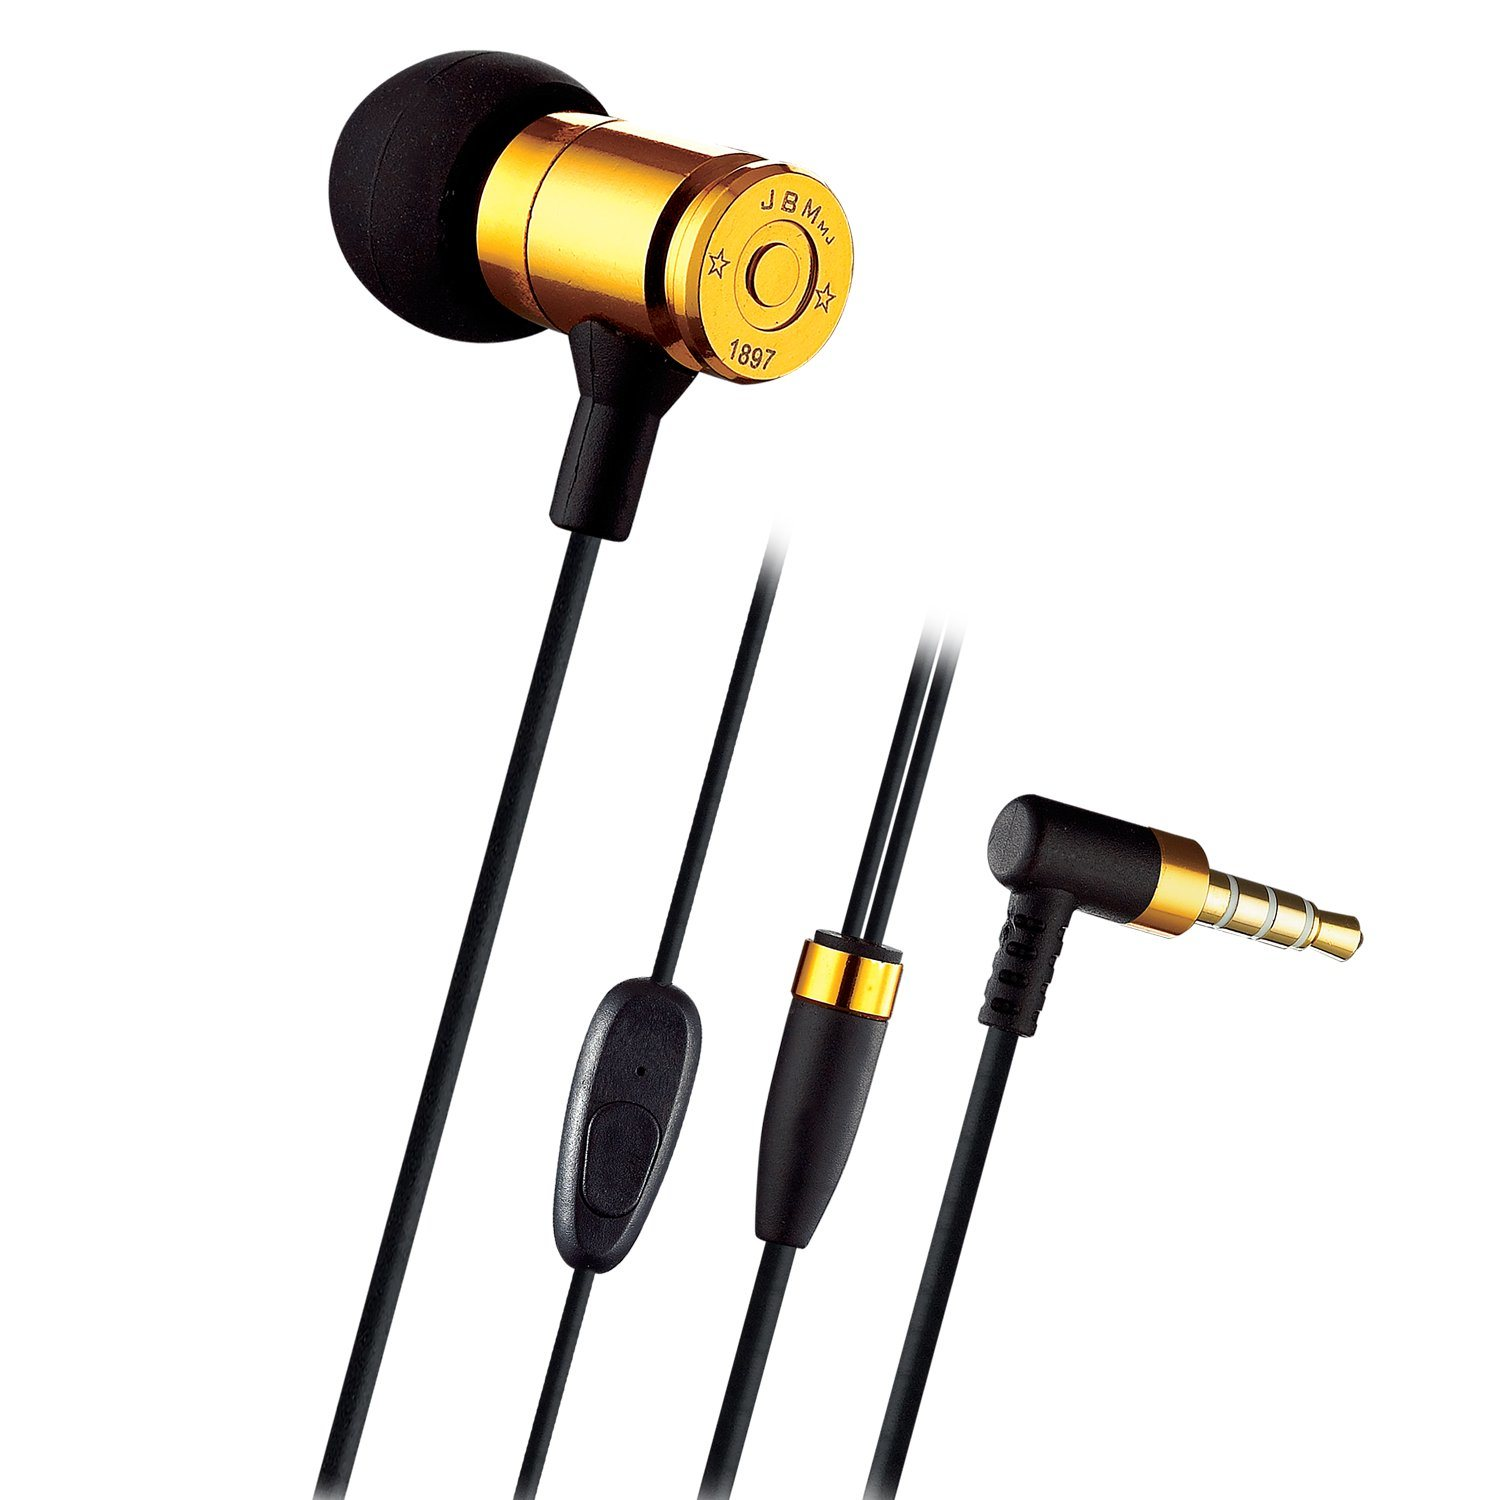 China 100 Good Quality Jbmmj Mj007 In Ear Headphones Sport Stereo Samsung J5 Handsfree Headset Earphone Earbud Mic Oem For All Mobiles Phone Accessory Mobile Accessories